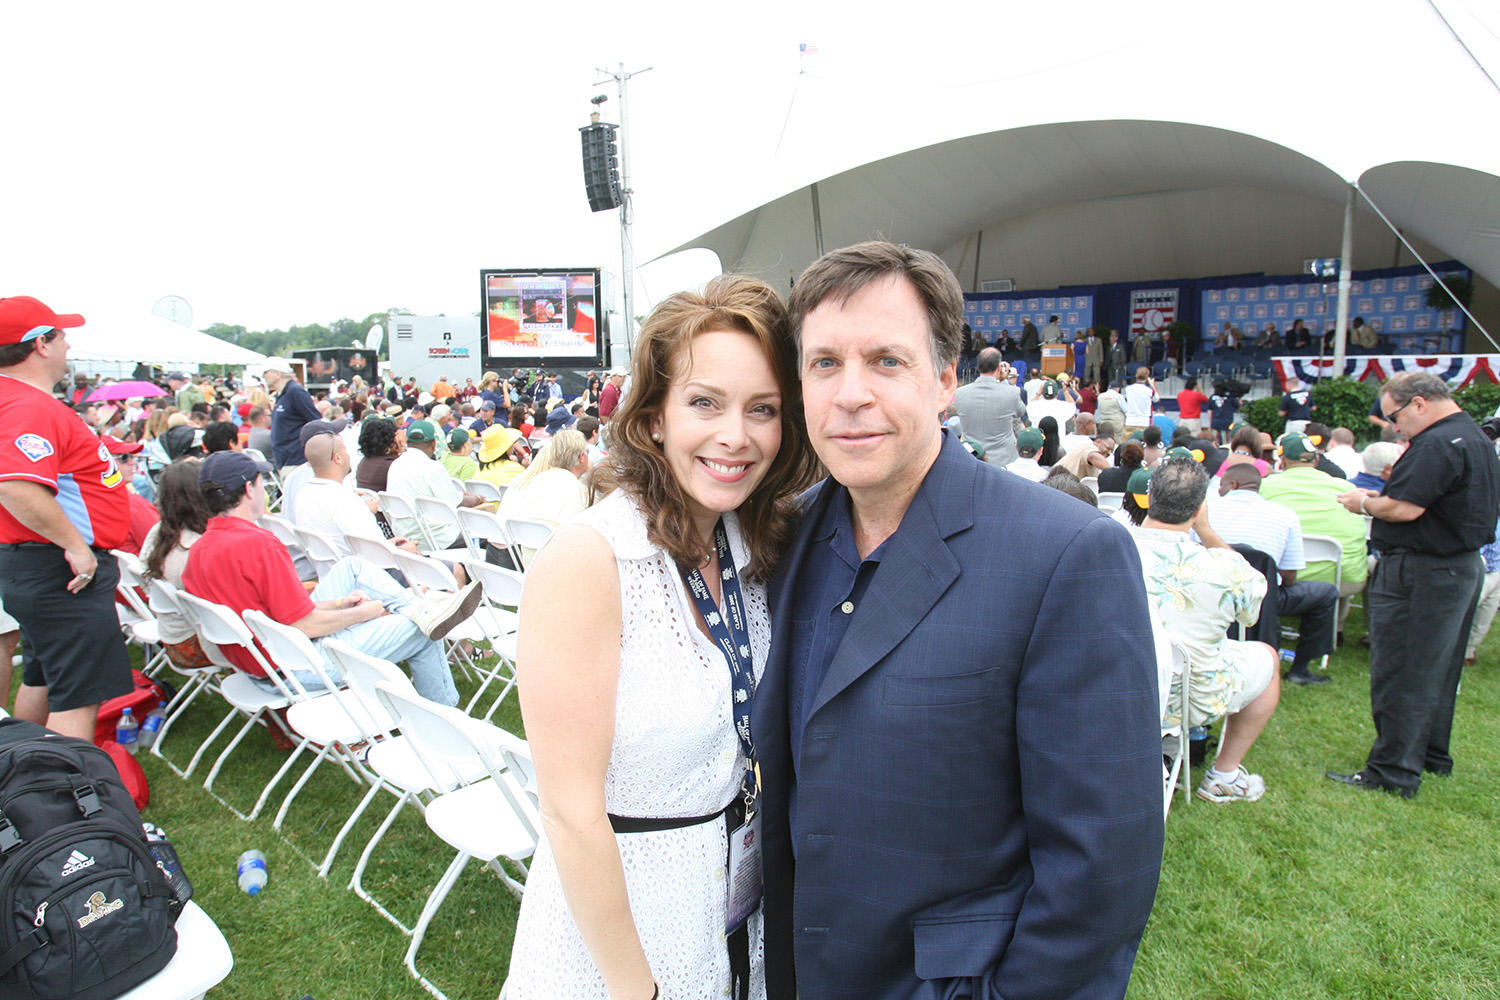 Bob Costas poses with his wife Jill Sutton at the 2009 <em>Induction Ceremony</em> during Hall of Fame Weekend. (Bill Greenblatt/National Baseball Hall of Fame and Museum)